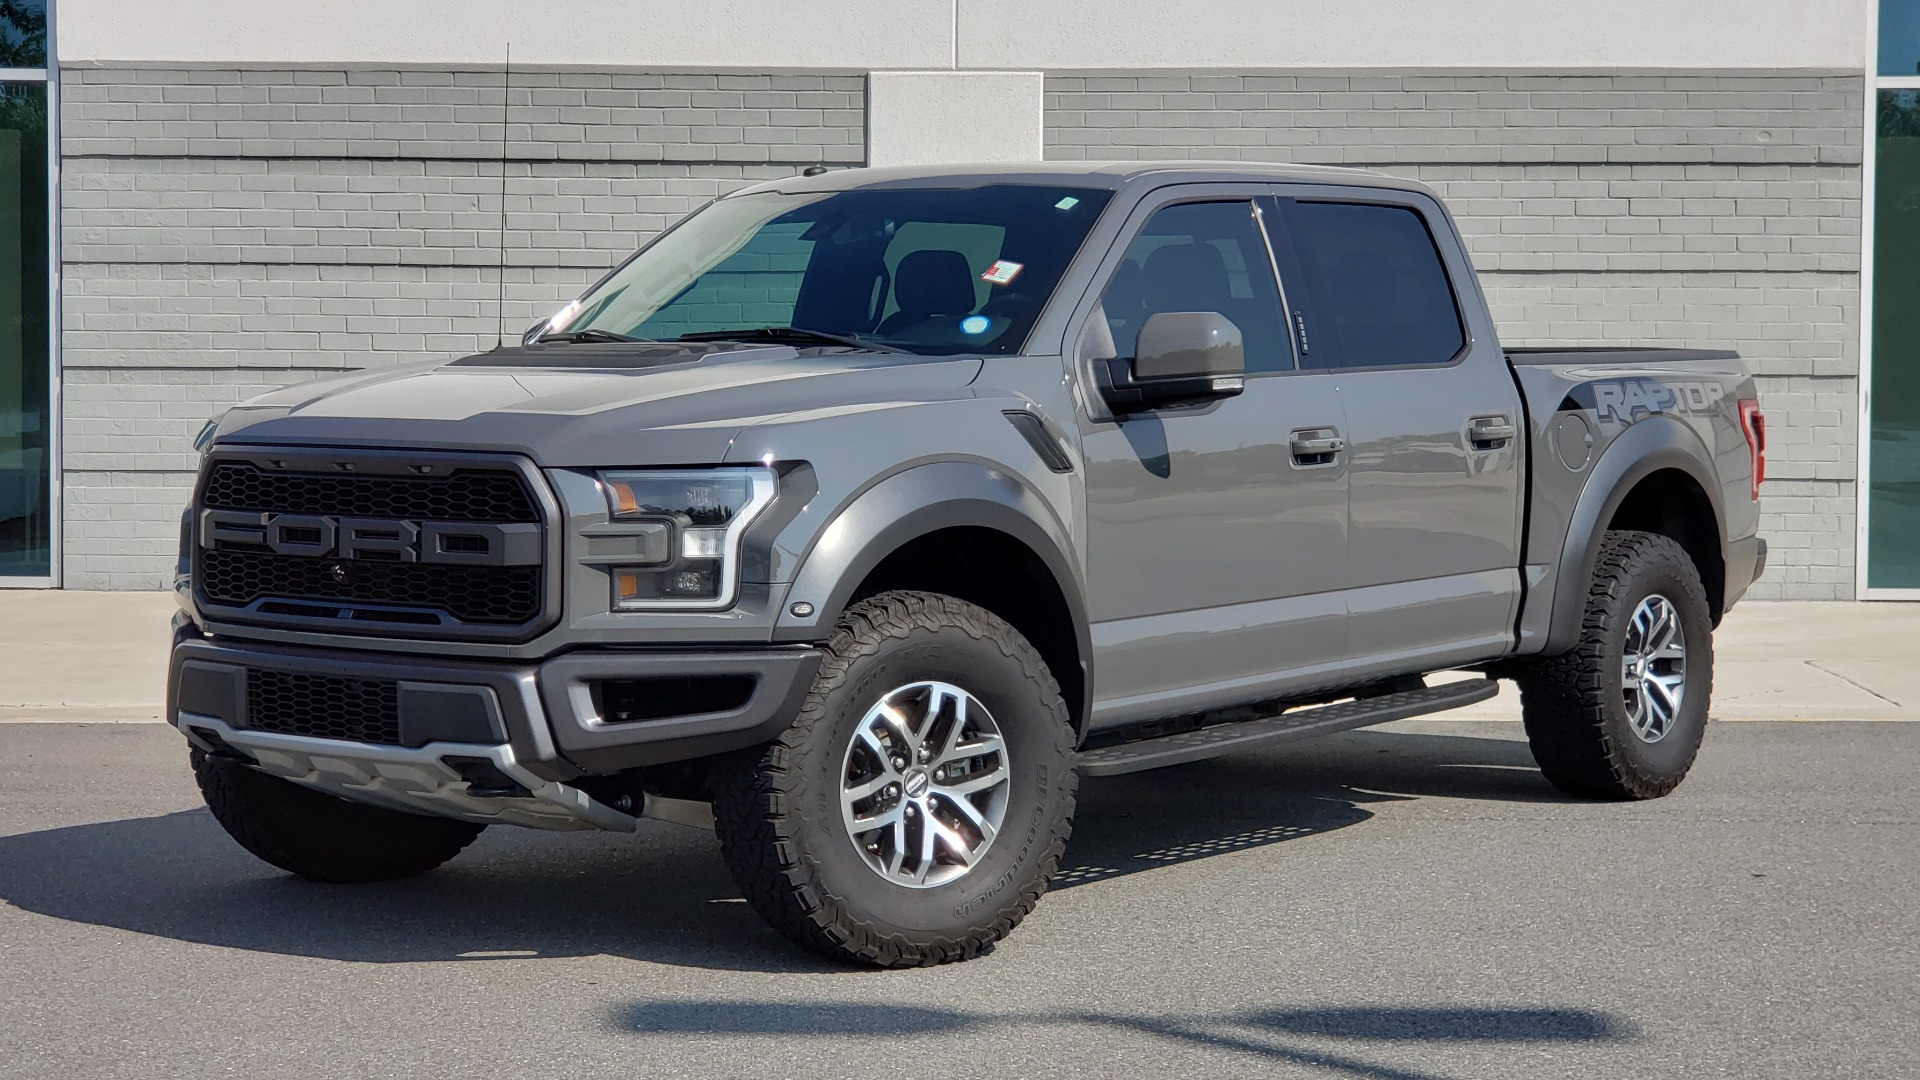 Used 2018 Ford F-150 RAPTOR 4X4 SUPERCREW / NAV / PANO-ROOF / REARVIEW for sale $69,999 at Formula Imports in Charlotte NC 28227 1